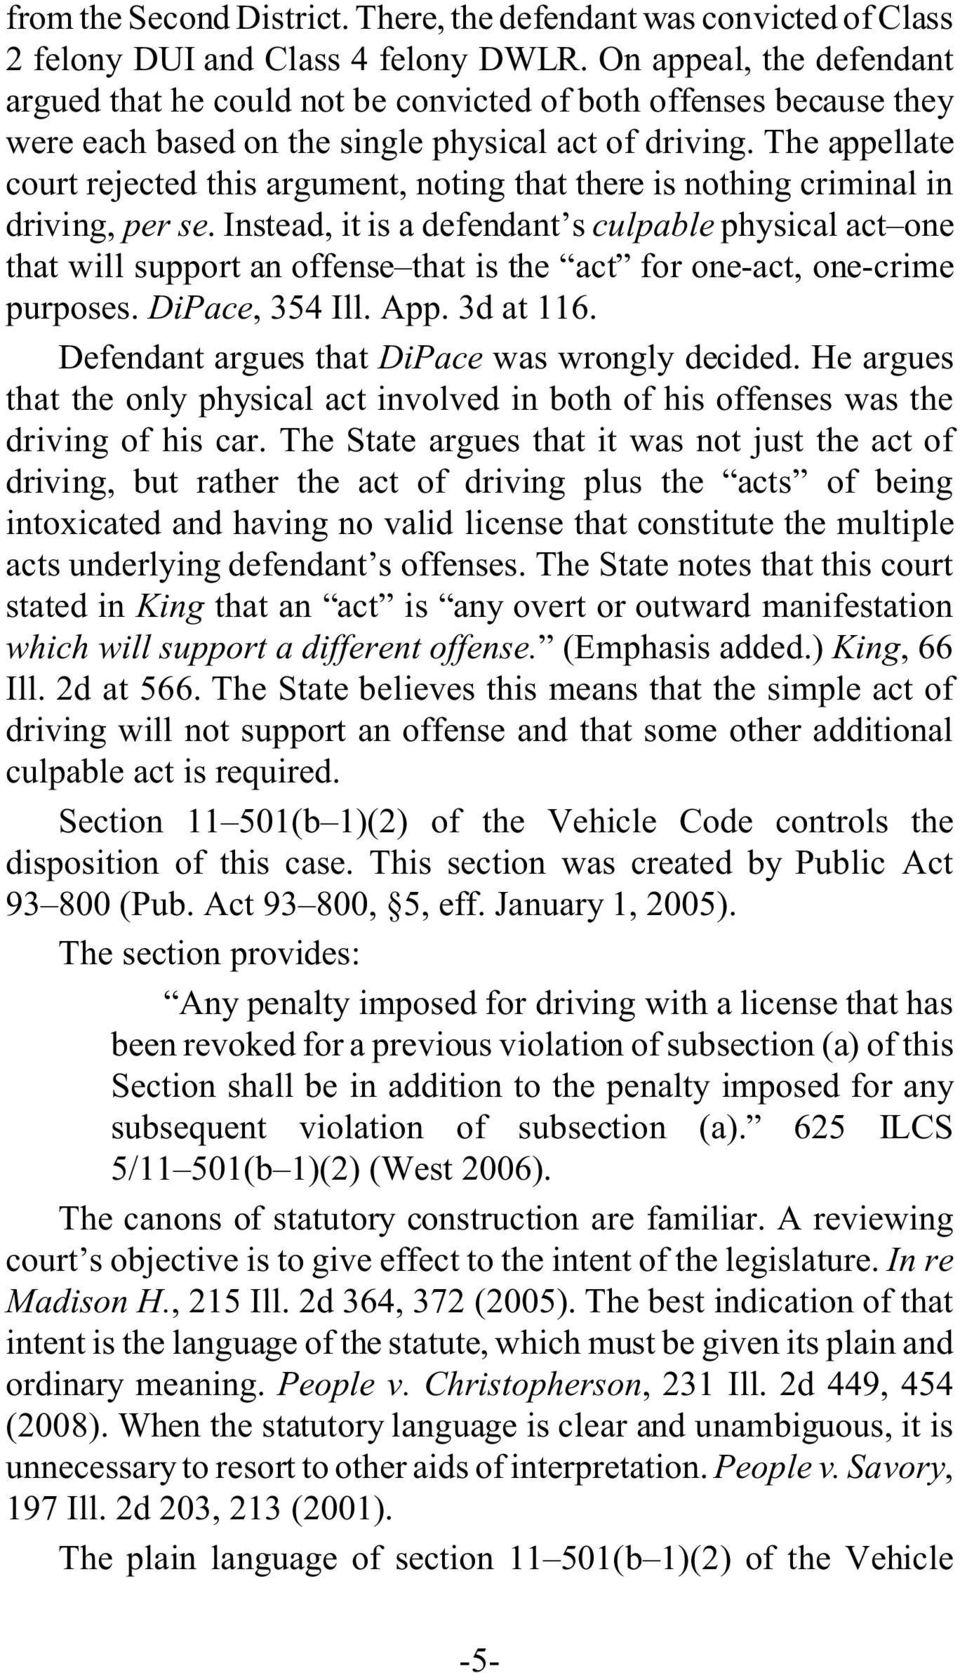 The appellate court rejected this argument, noting that there is nothing criminal in driving, per se.